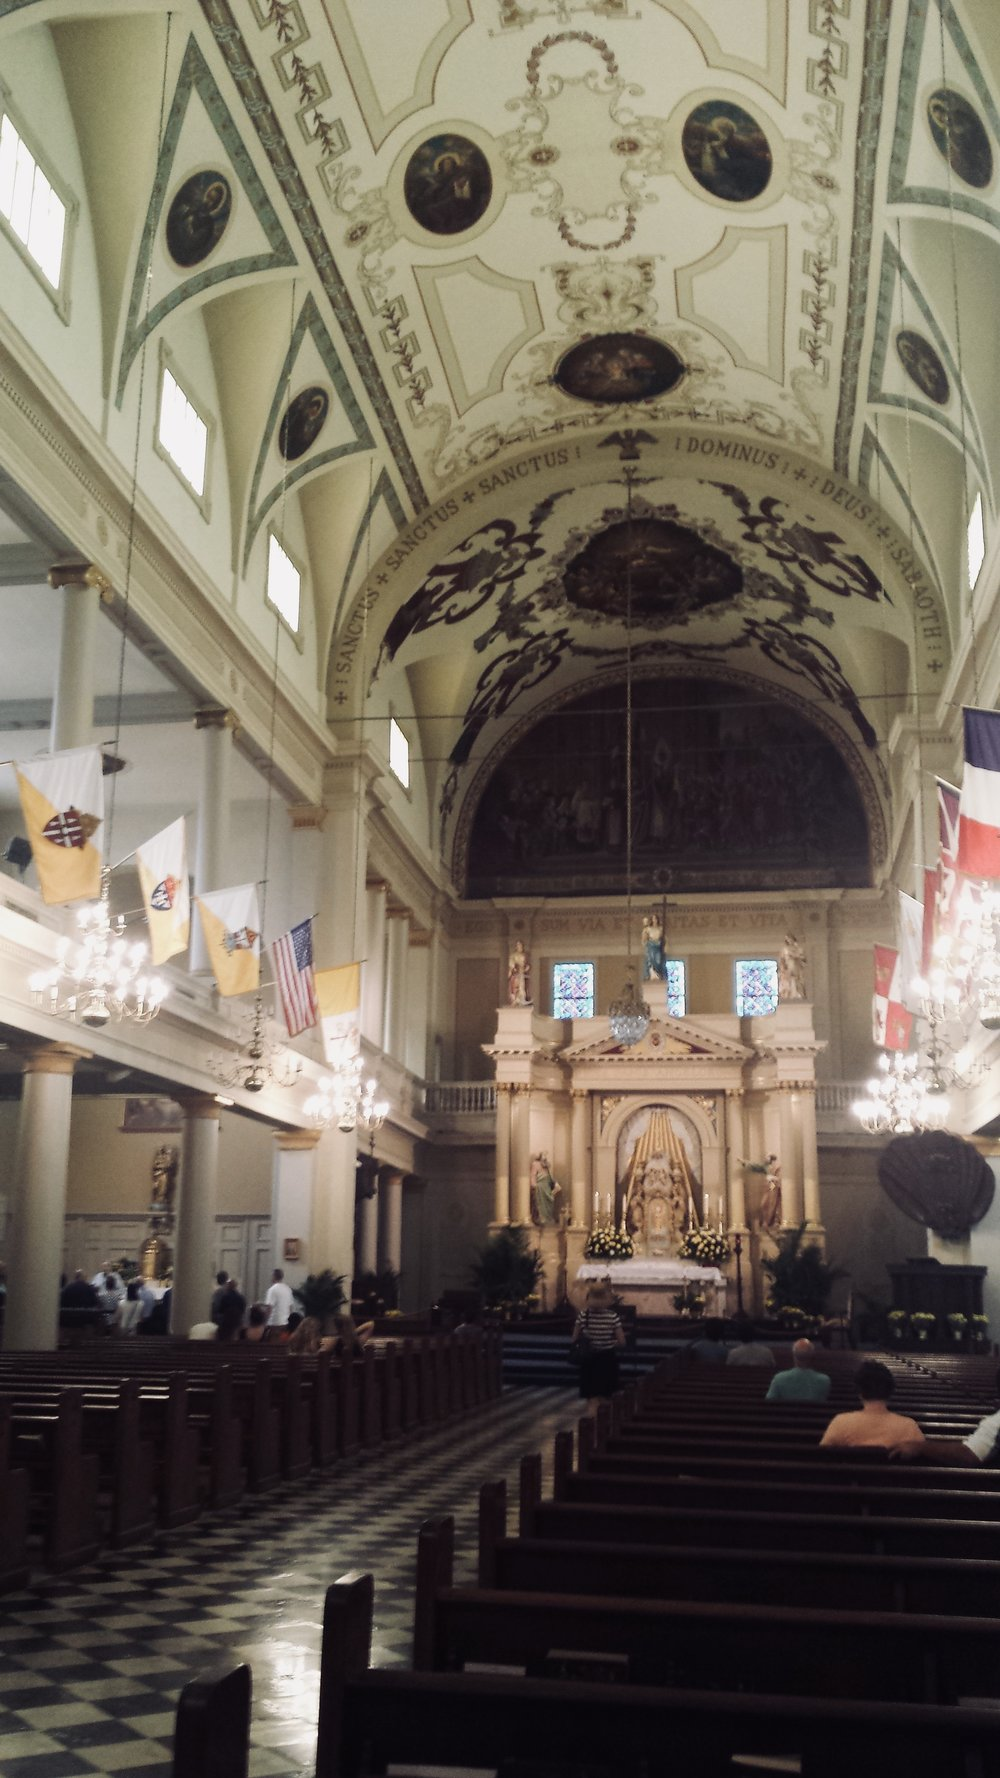 Inside the St. Louis Cathedral